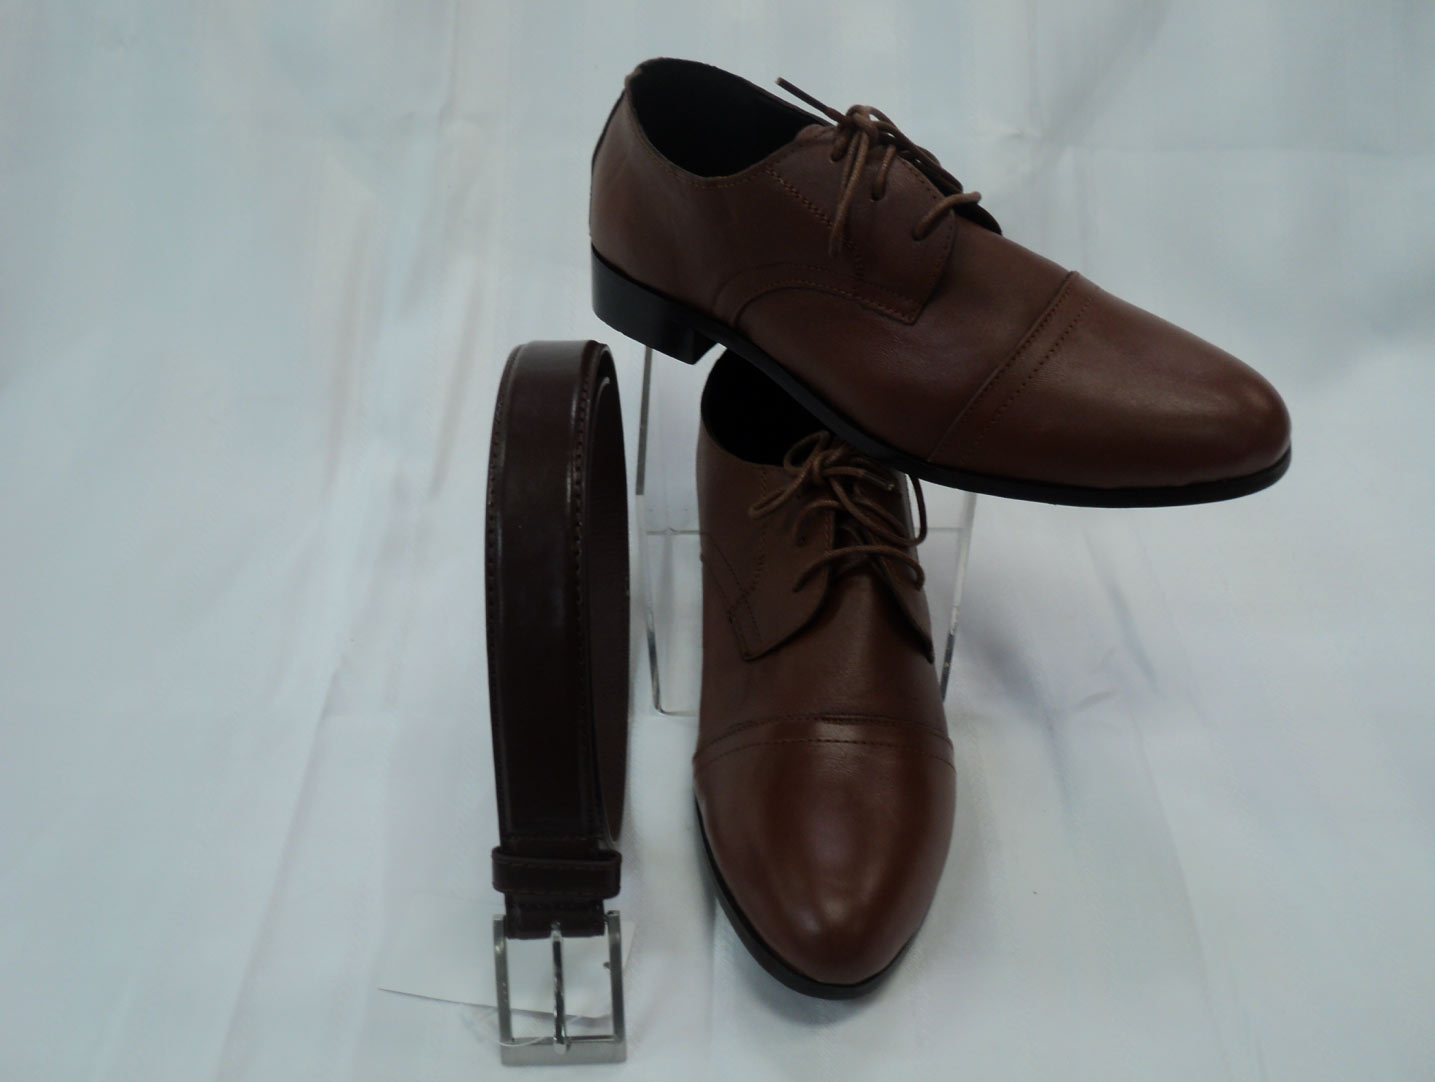 dress shoes and belt